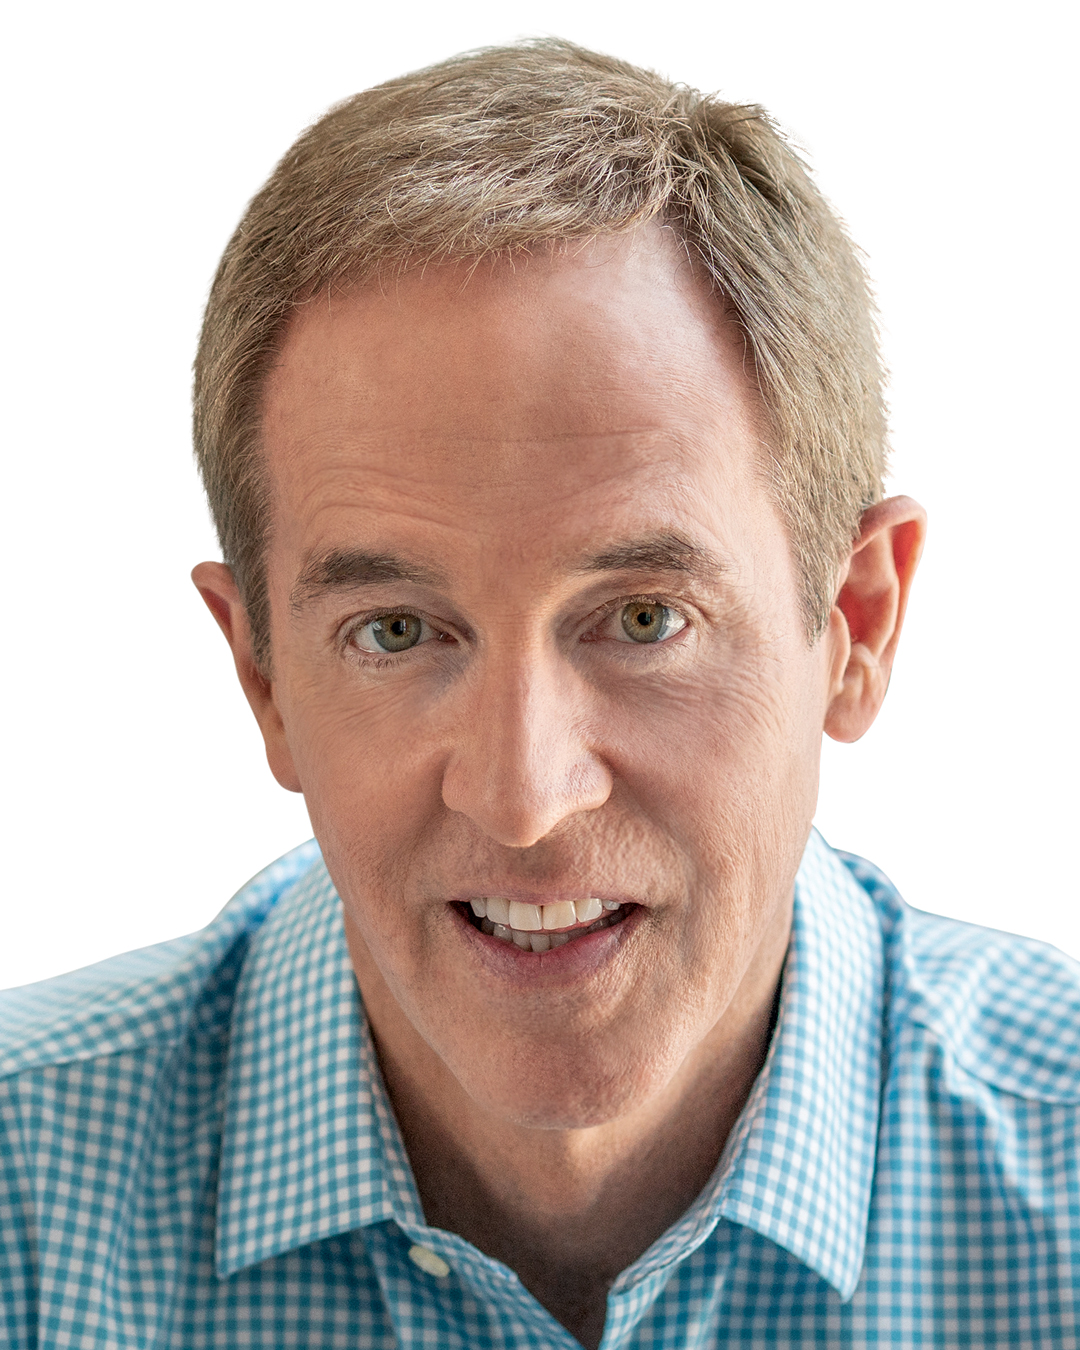 Atlanta 500: Andy Stanley